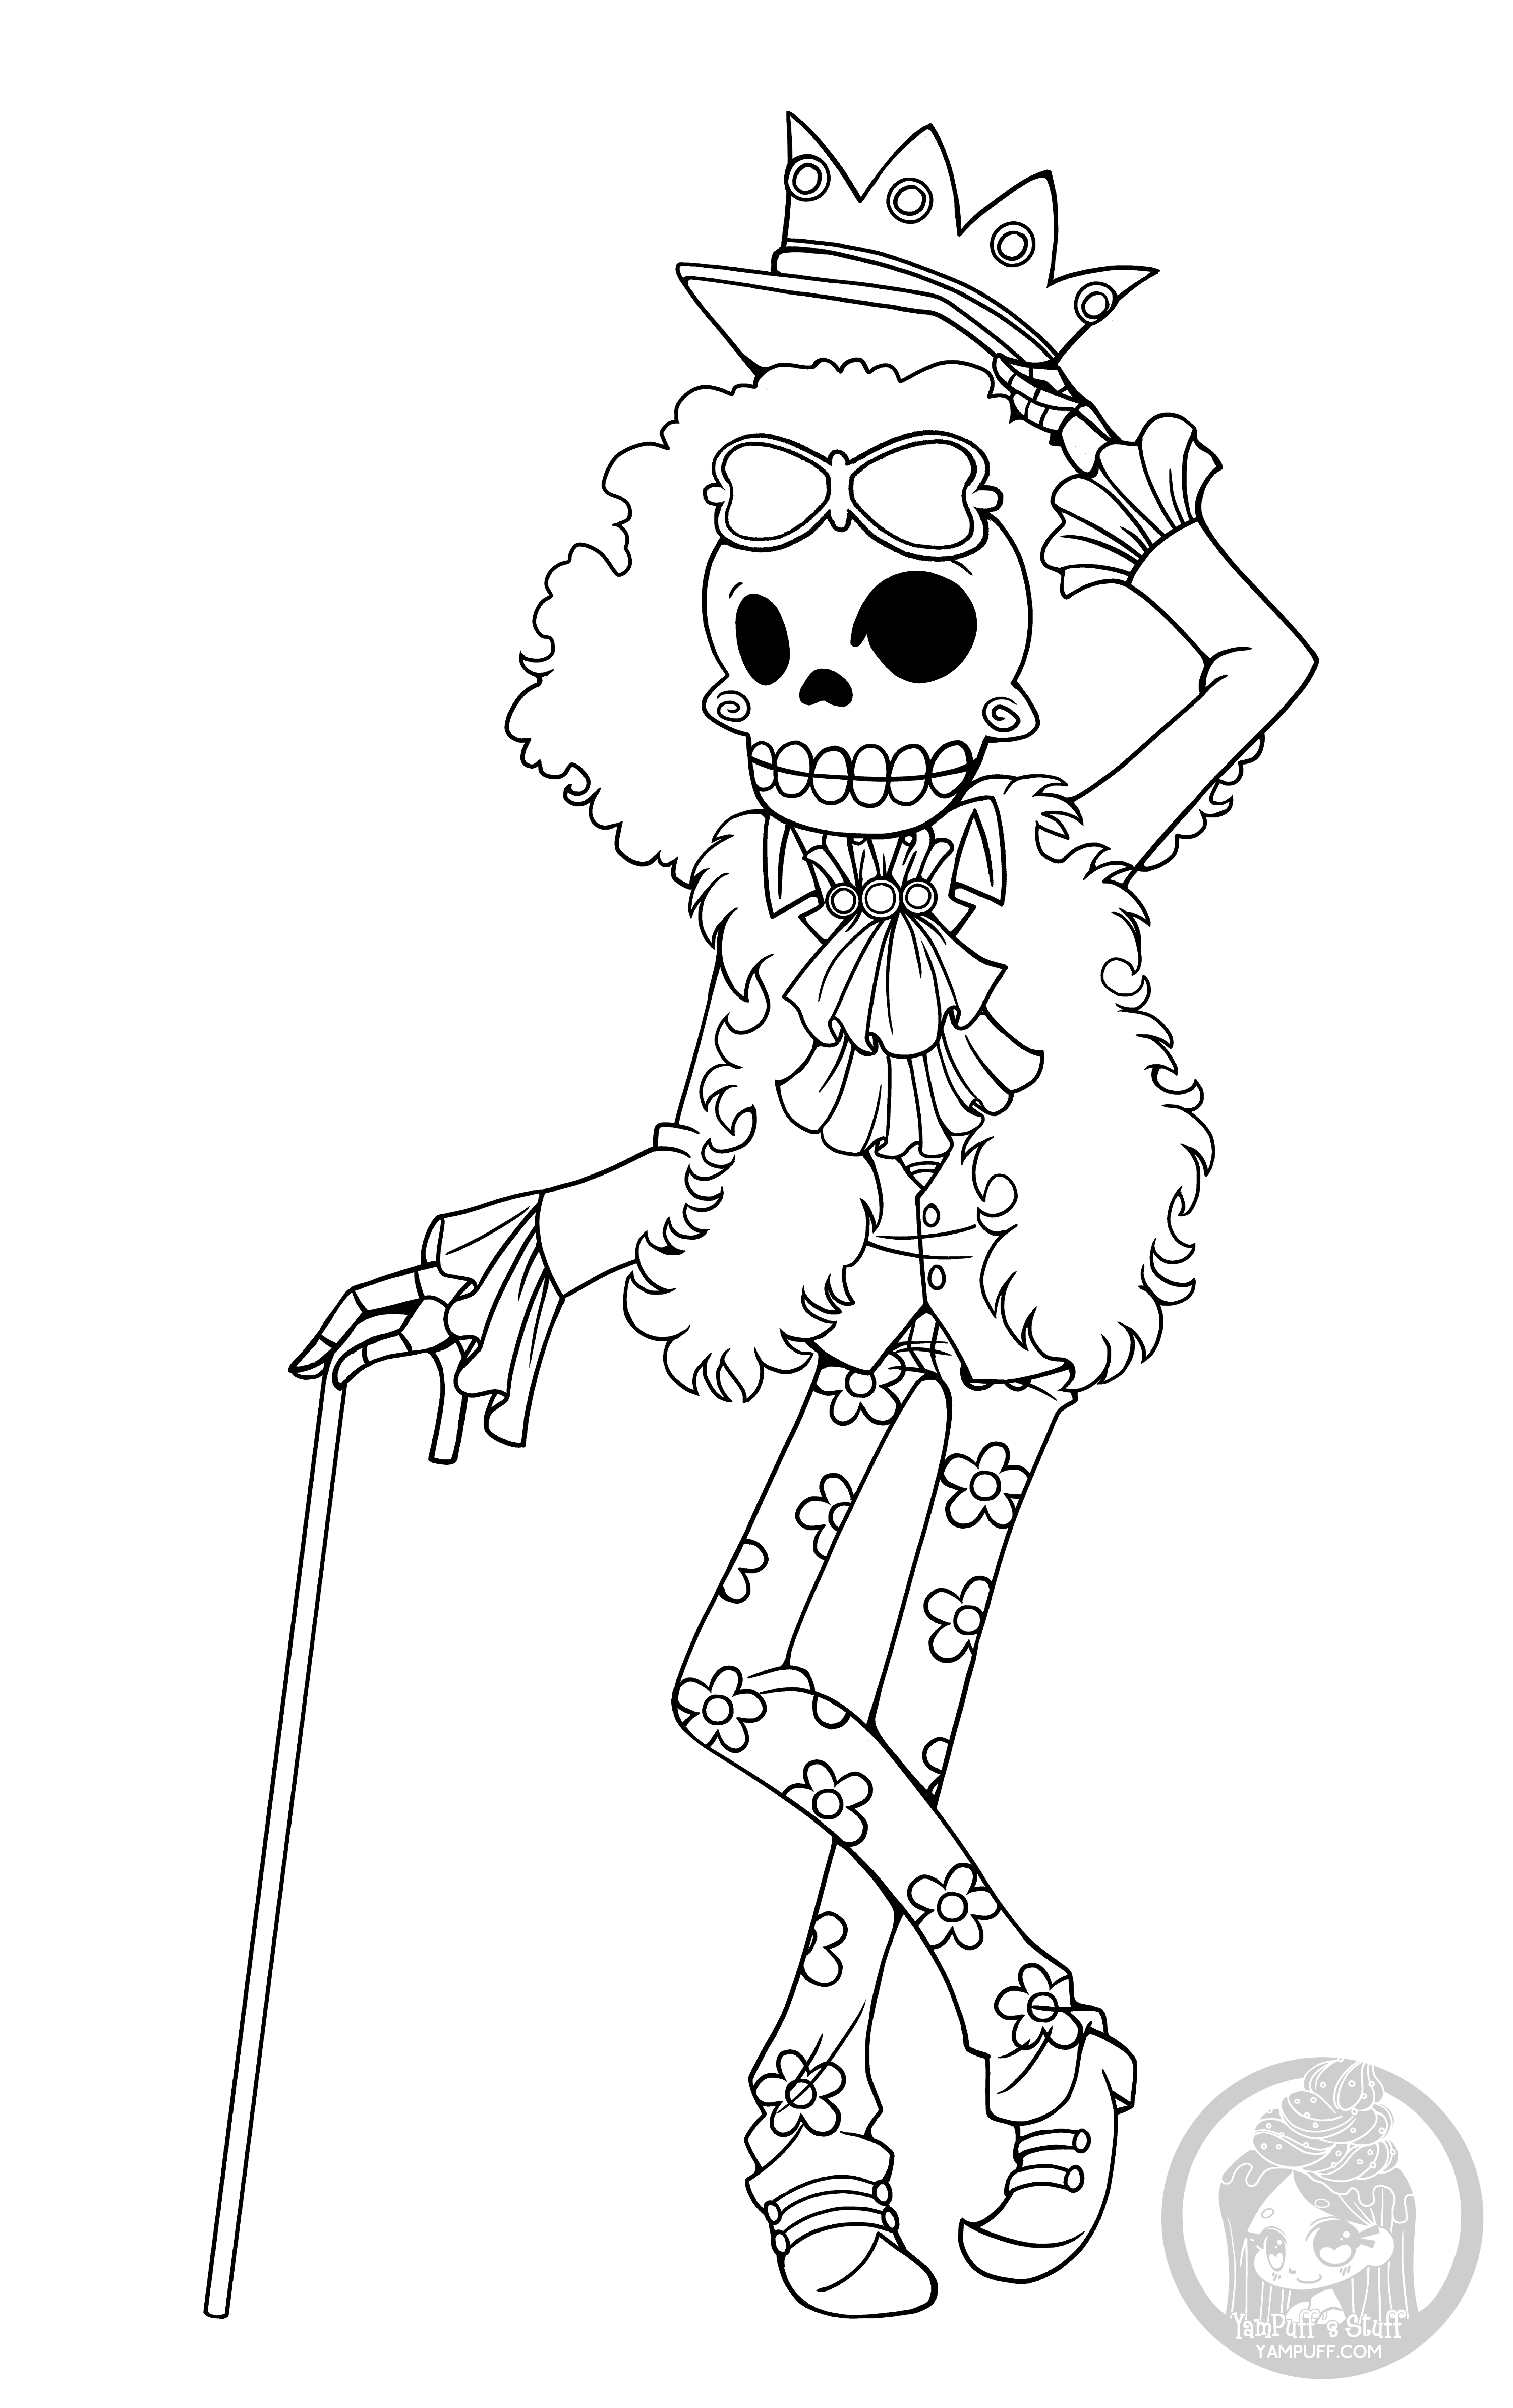 Fanart - Free Chibi Colouring Pages • Yampuff'S Stuff destiné Coloriage One Piece A Imprimer